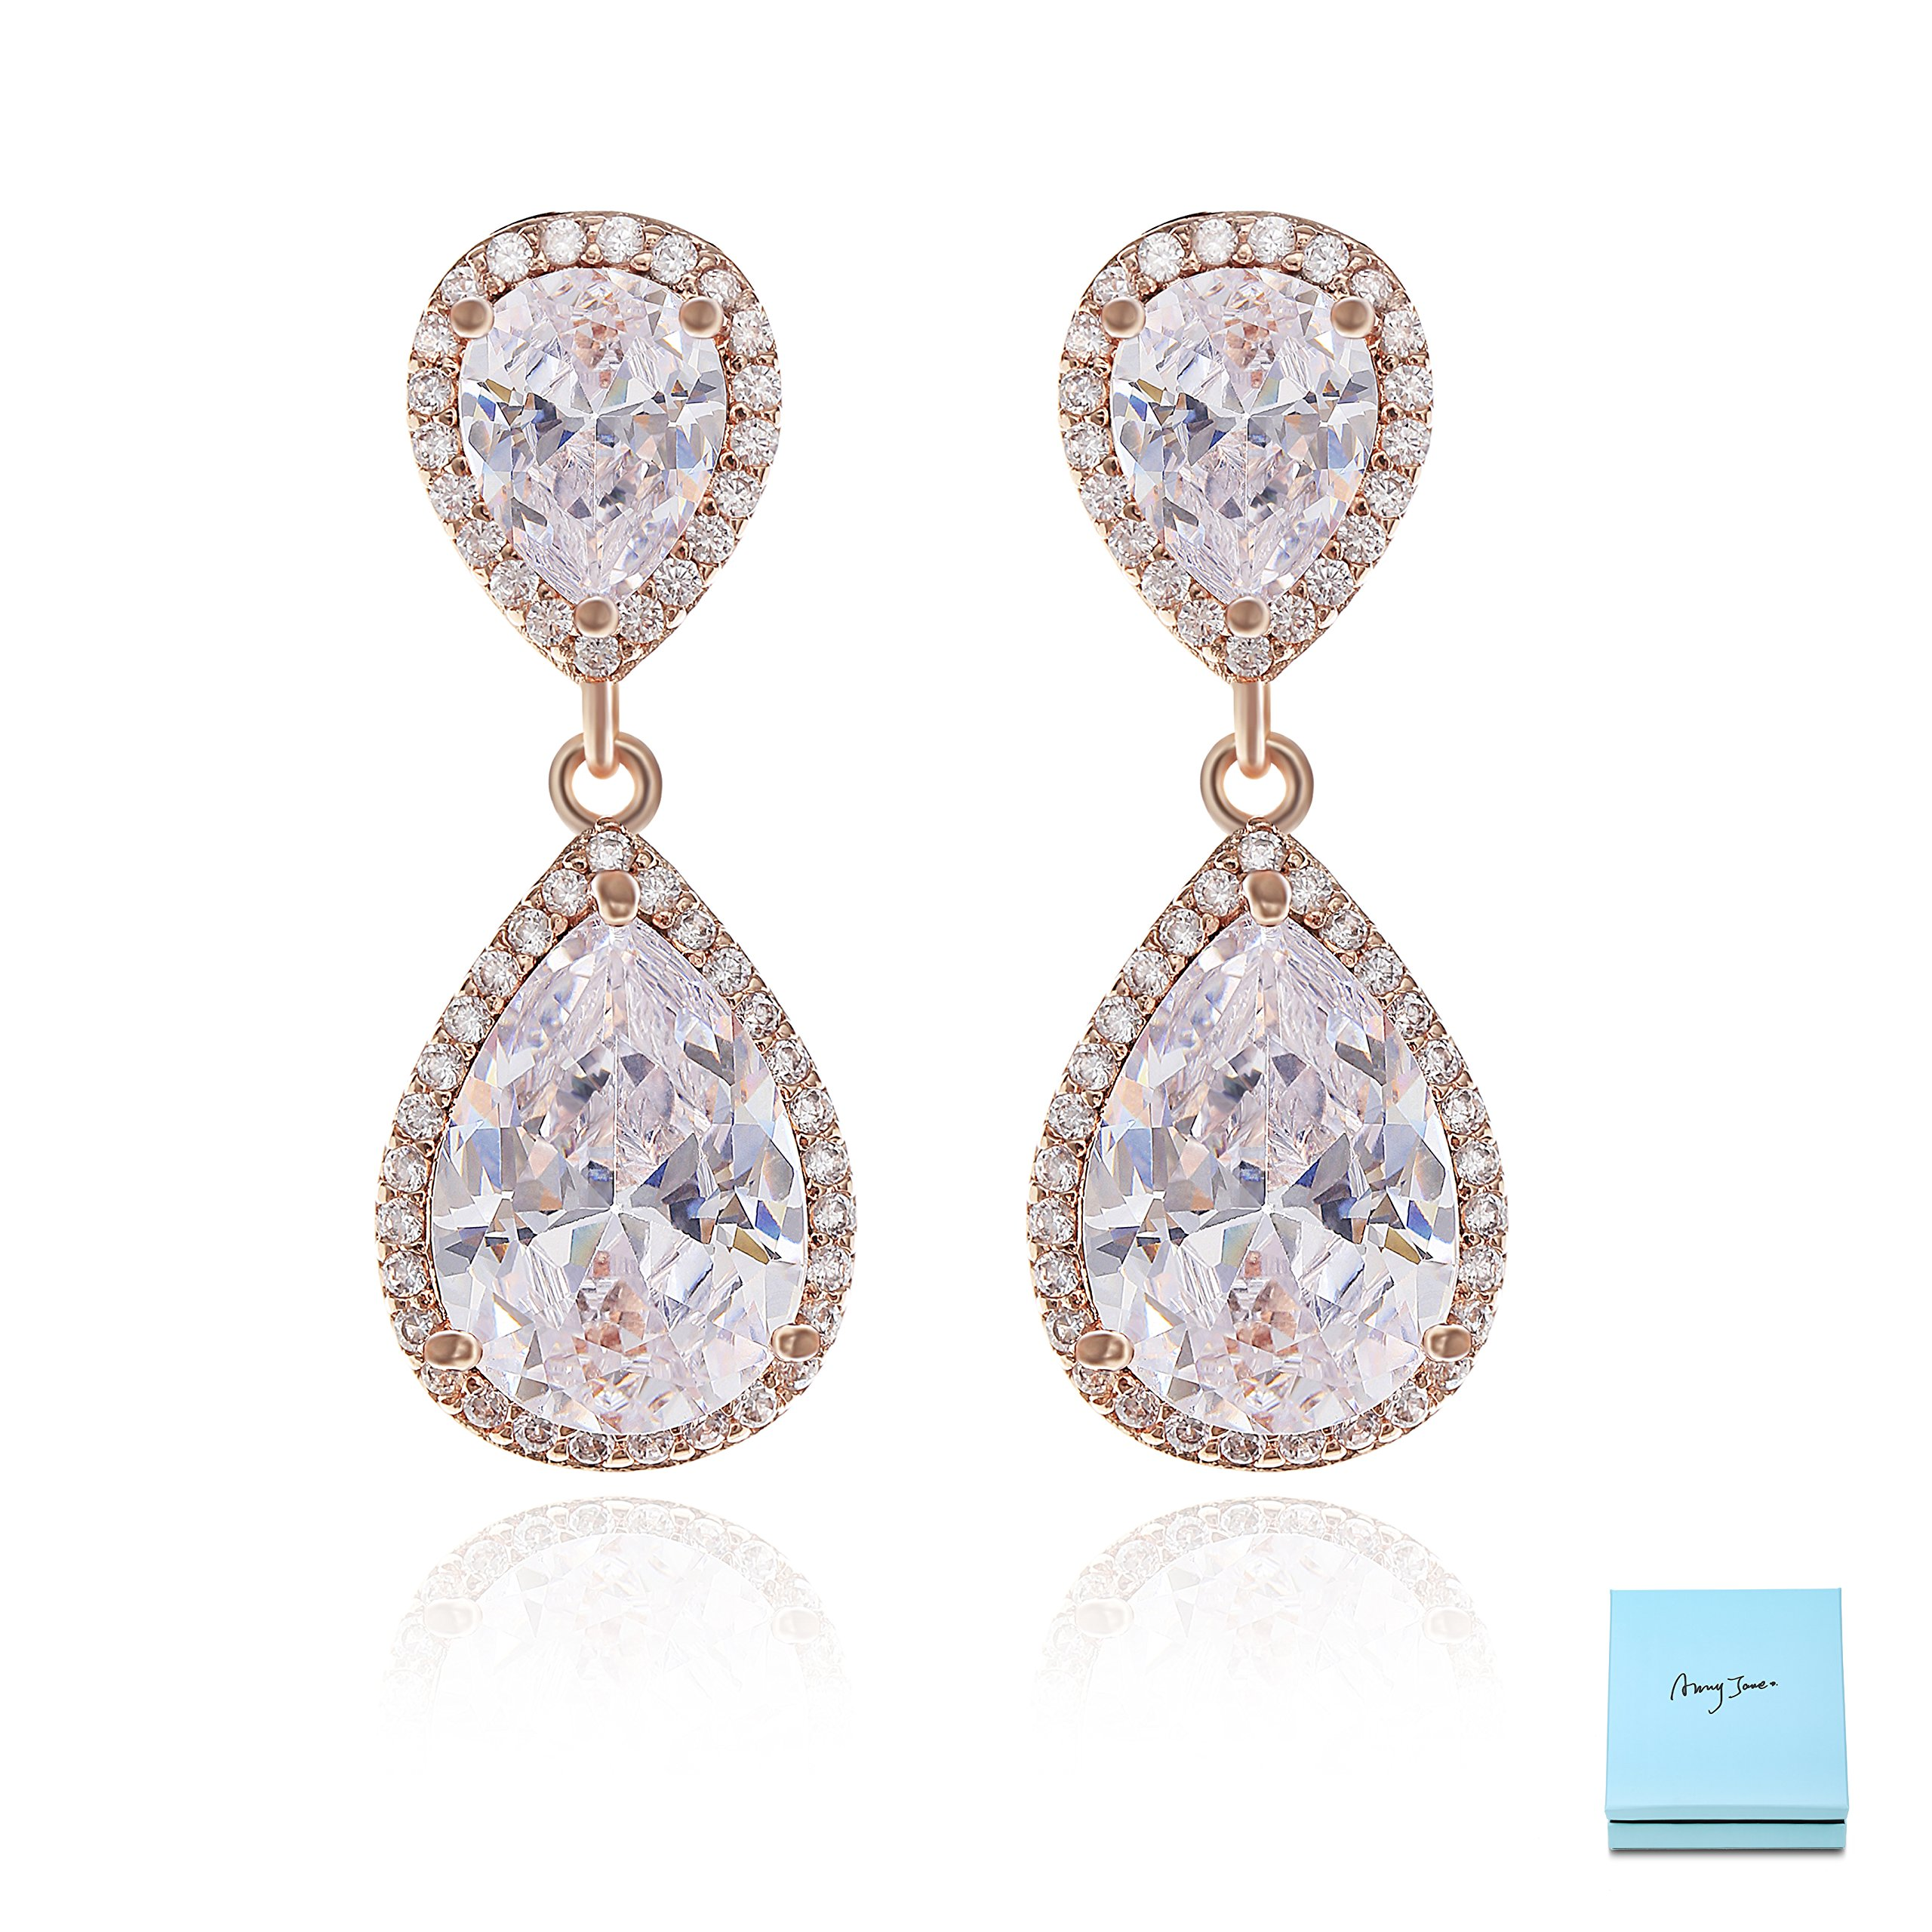 Teardrop Dangle Earrings for Wedding - 14K Rose Gold Plated Sterling Silver Pear Shape Cubic Zirconia Crystal Drop Earrings for Women Bridal Jewelry for Bridesmaids Mother of Bride Party Prom Pageant